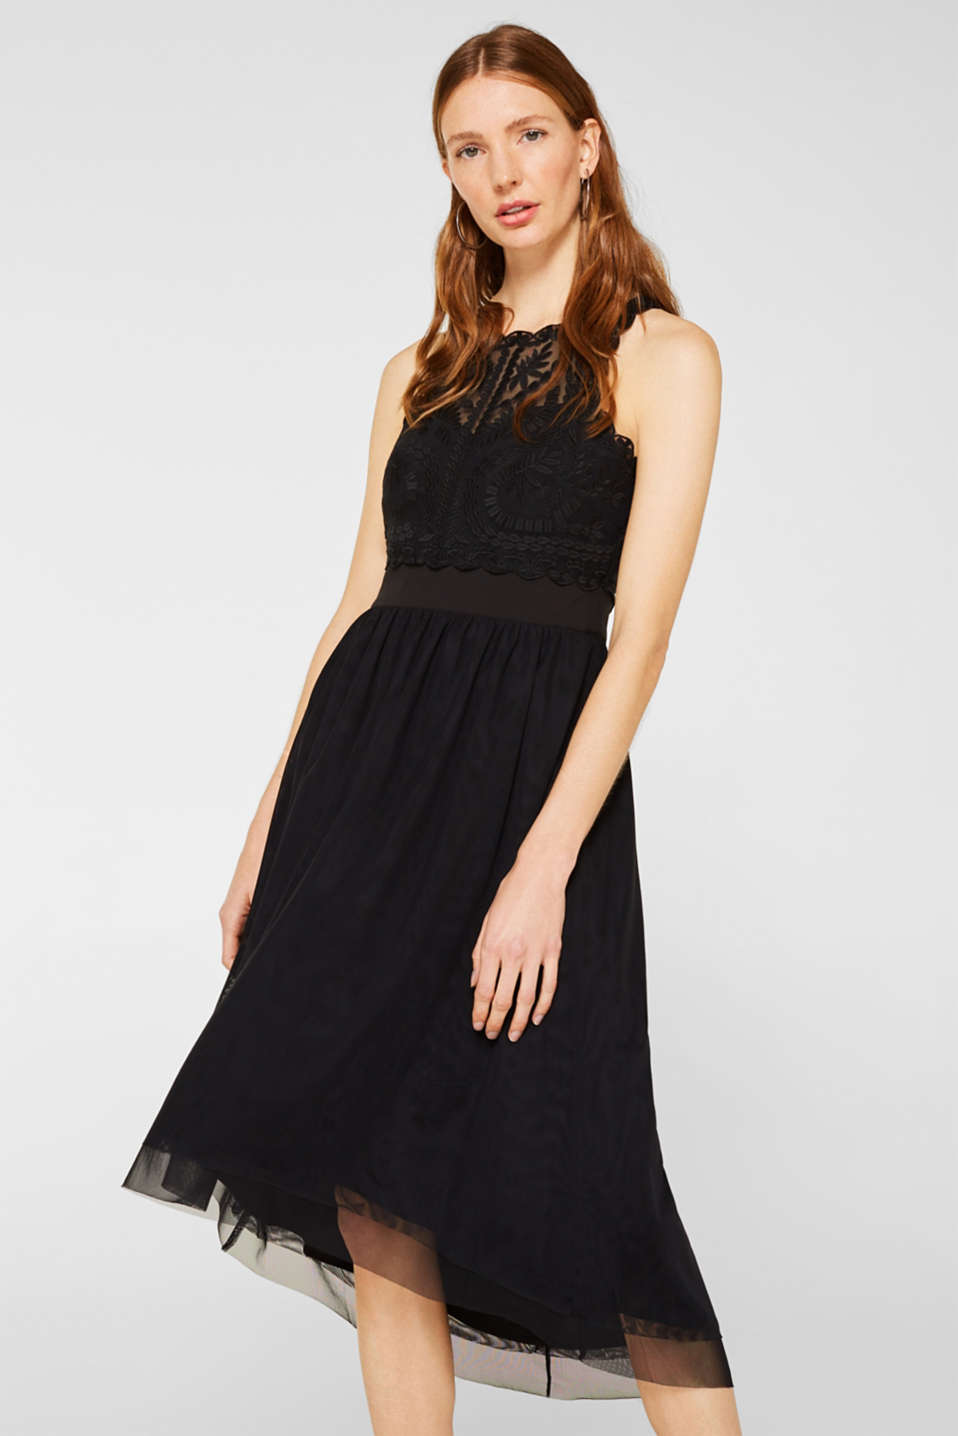 Esprit - Midi dress made of tulle and lace